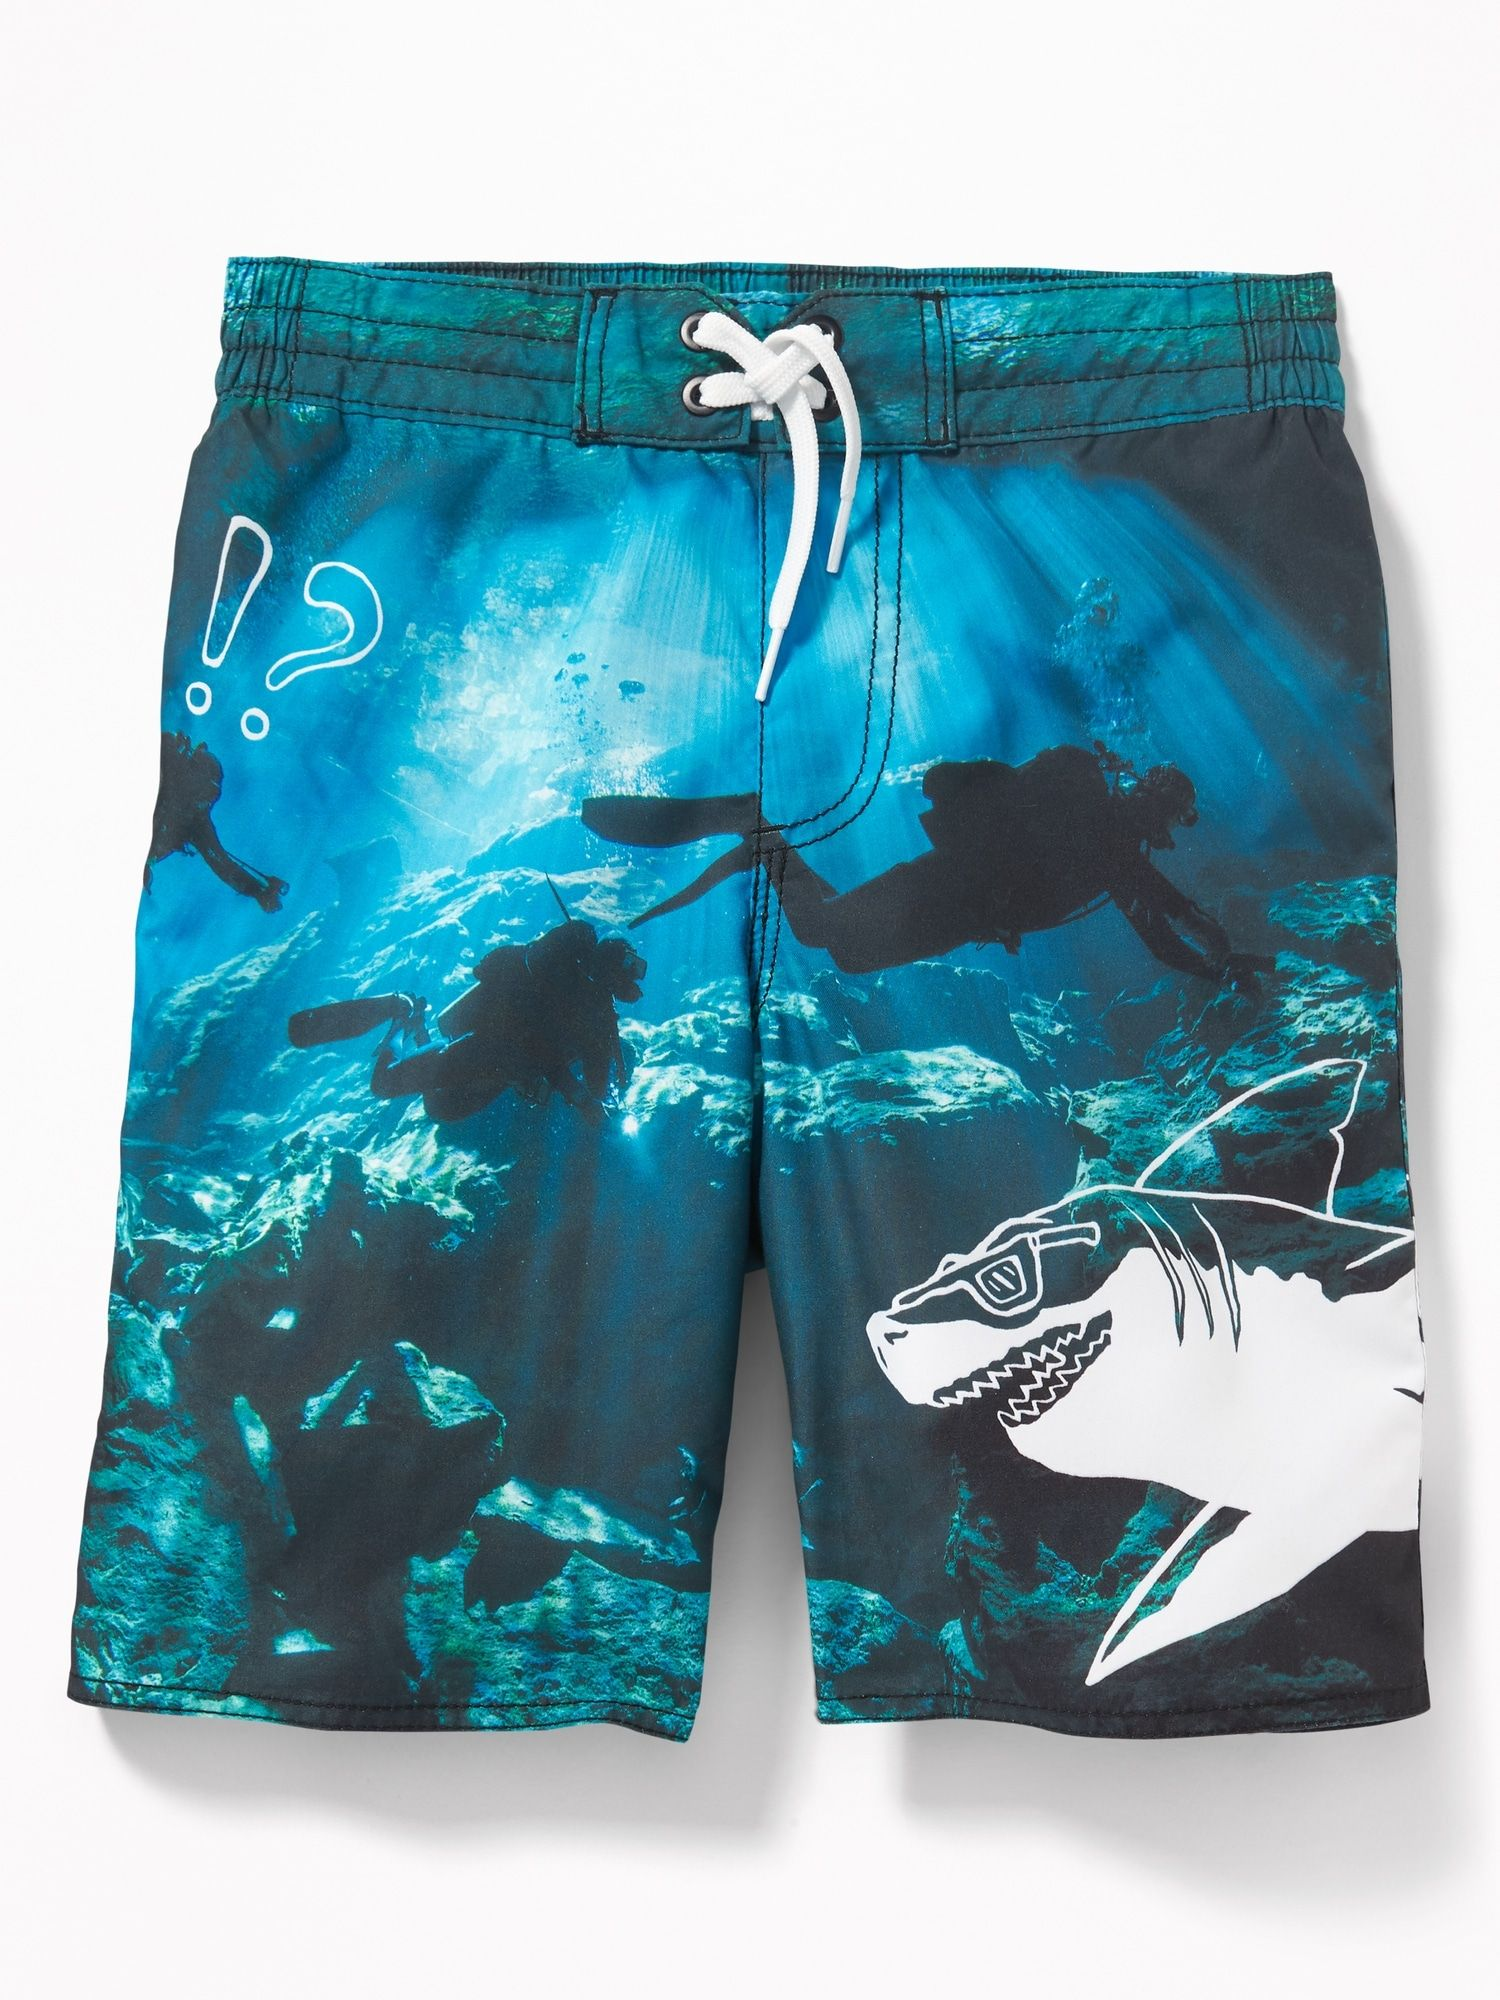 58af69b0e36cd Highline Recon Board Shorts, Main, color, Real Teal   SWIMWEAR   Polo  jeans, Toddler boys, Shorts